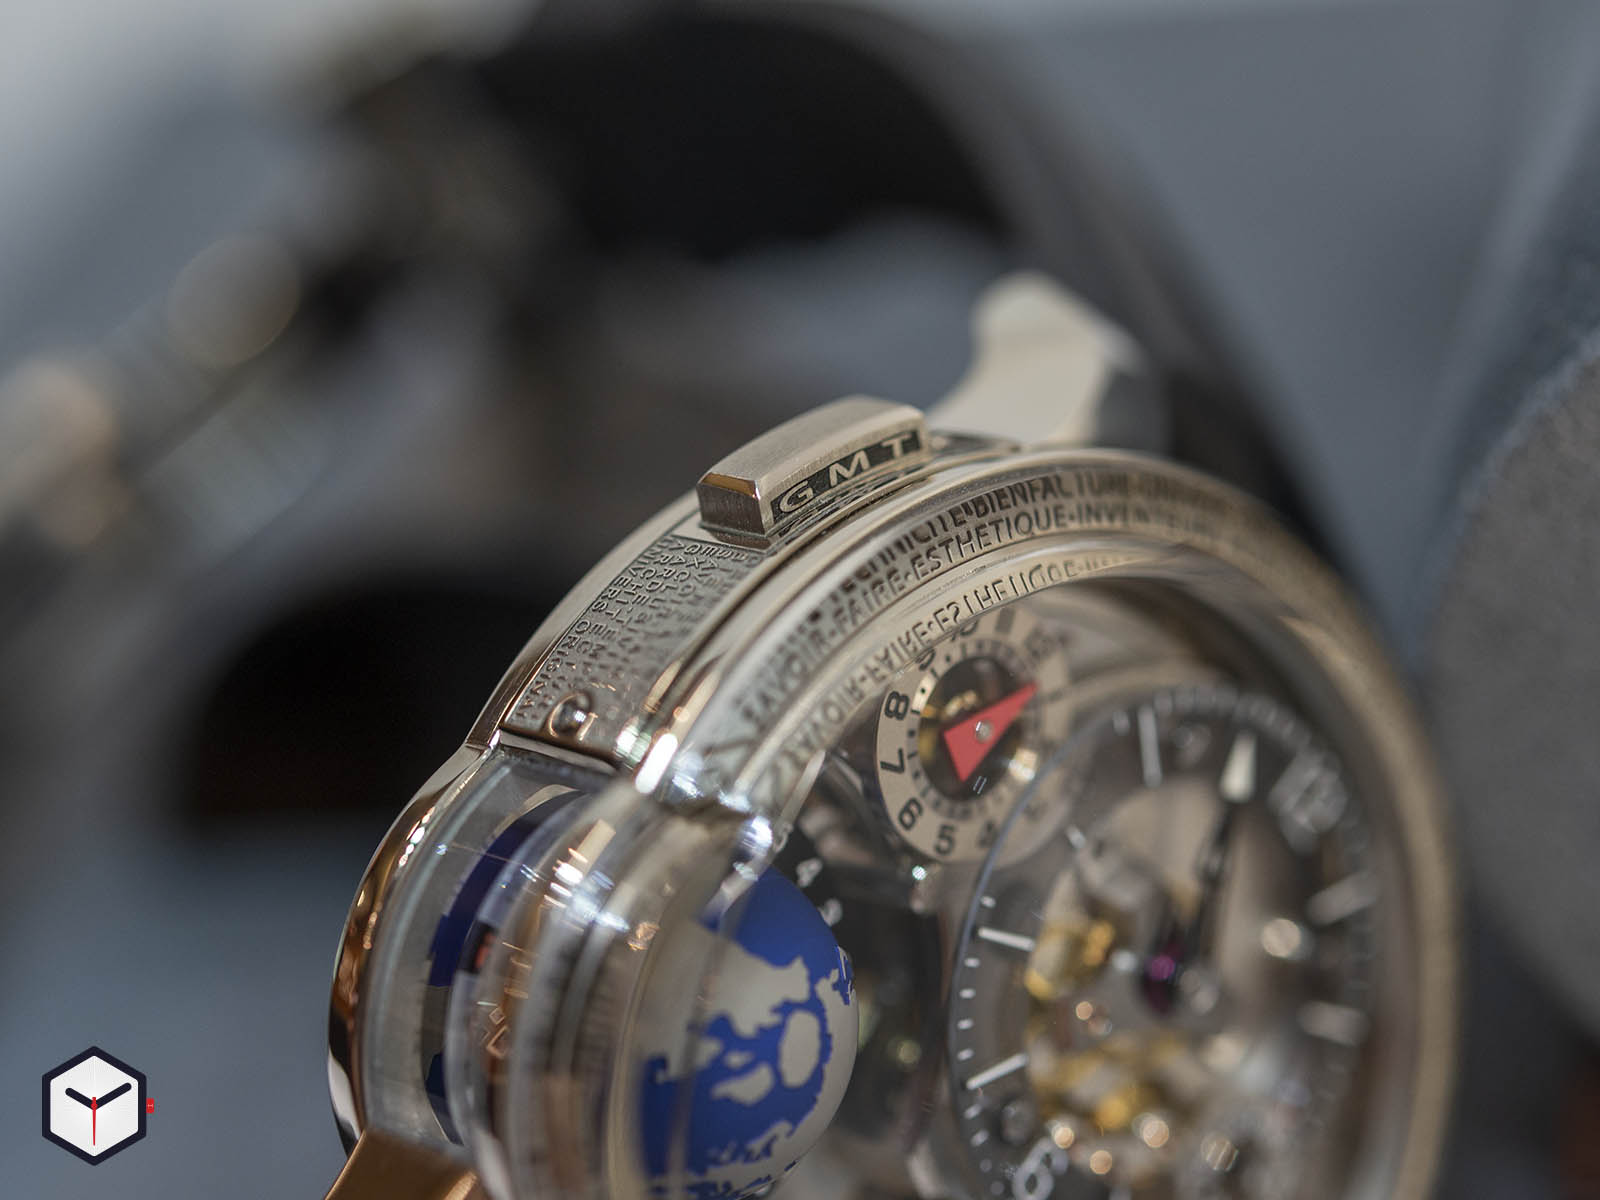 greubel-forsey-gmt-earth-5.jpg